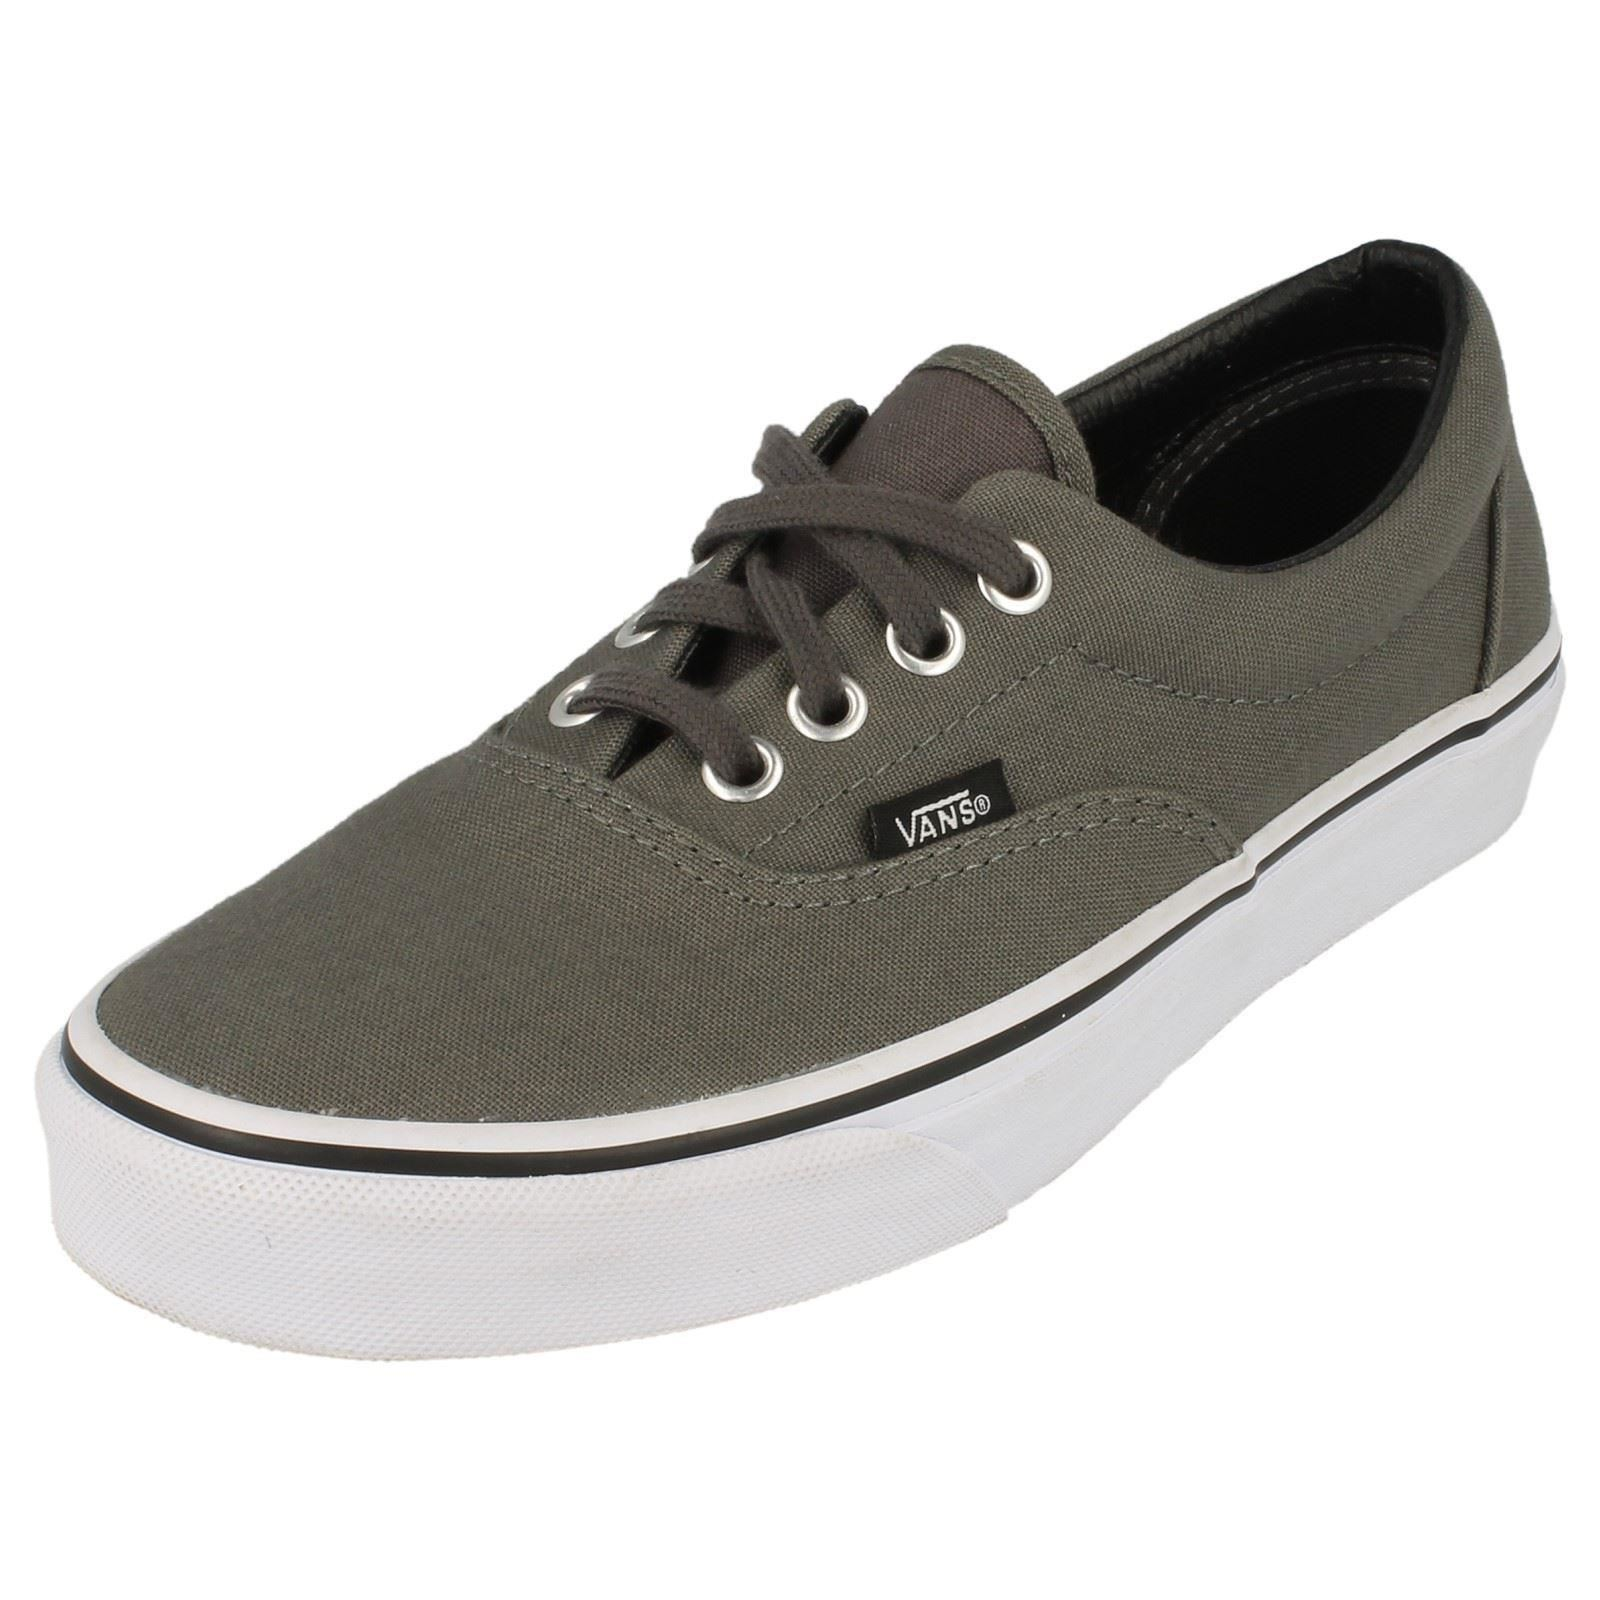 5b51d5c586 Unisex Vans Canvas Shoes  VN-O TN99YH